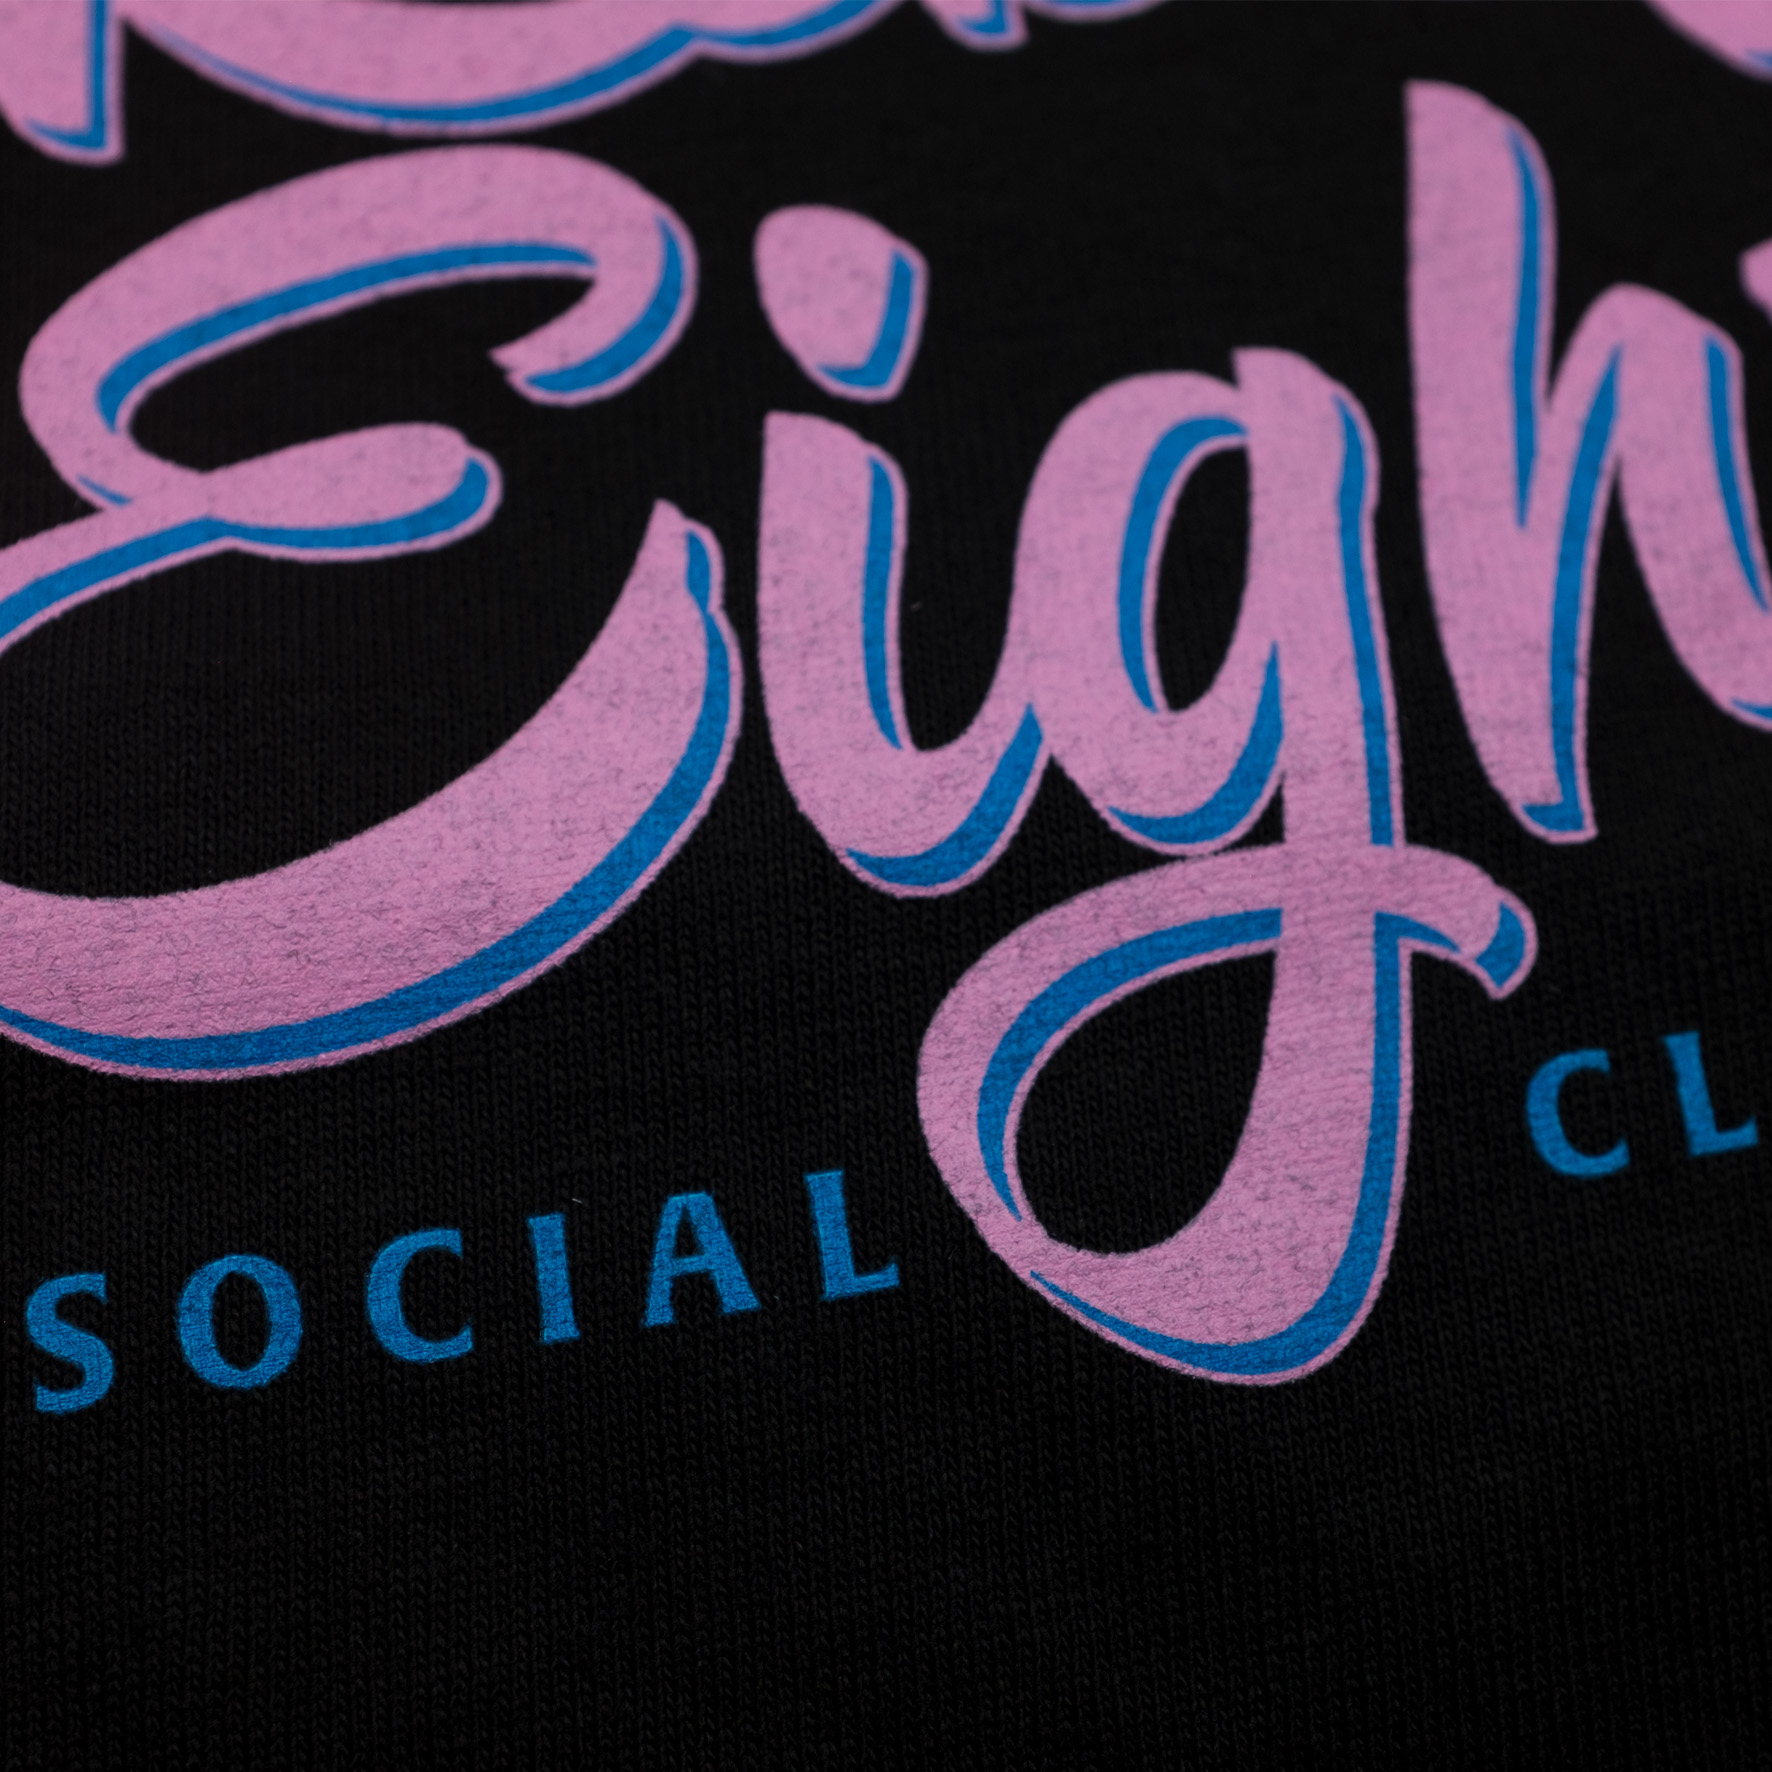 Social club blk detail2 jpg